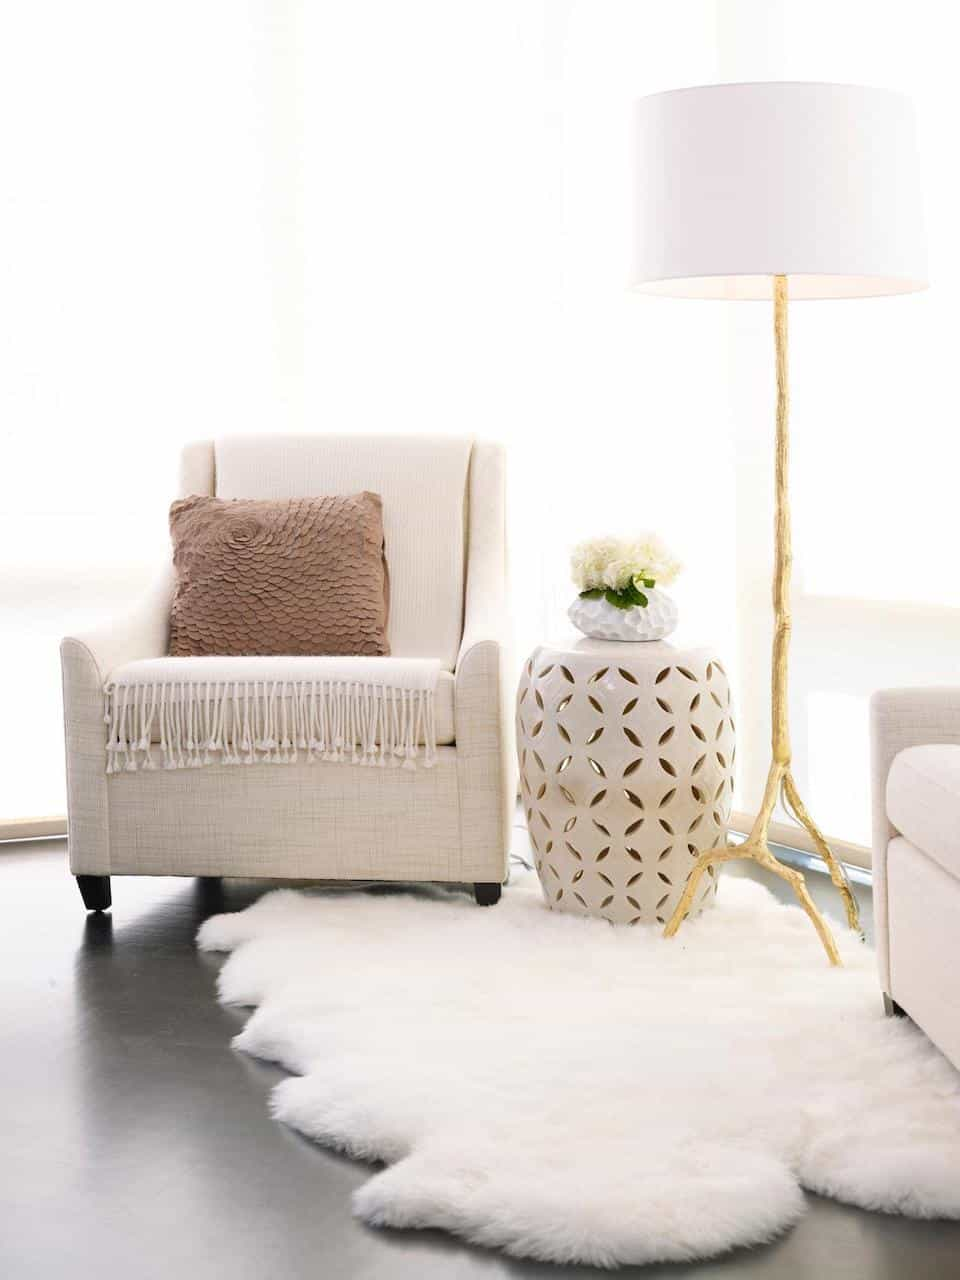 Fancy Sitting Room With White Chair And White Faux Sheepskin Rug (View 2 of 15)